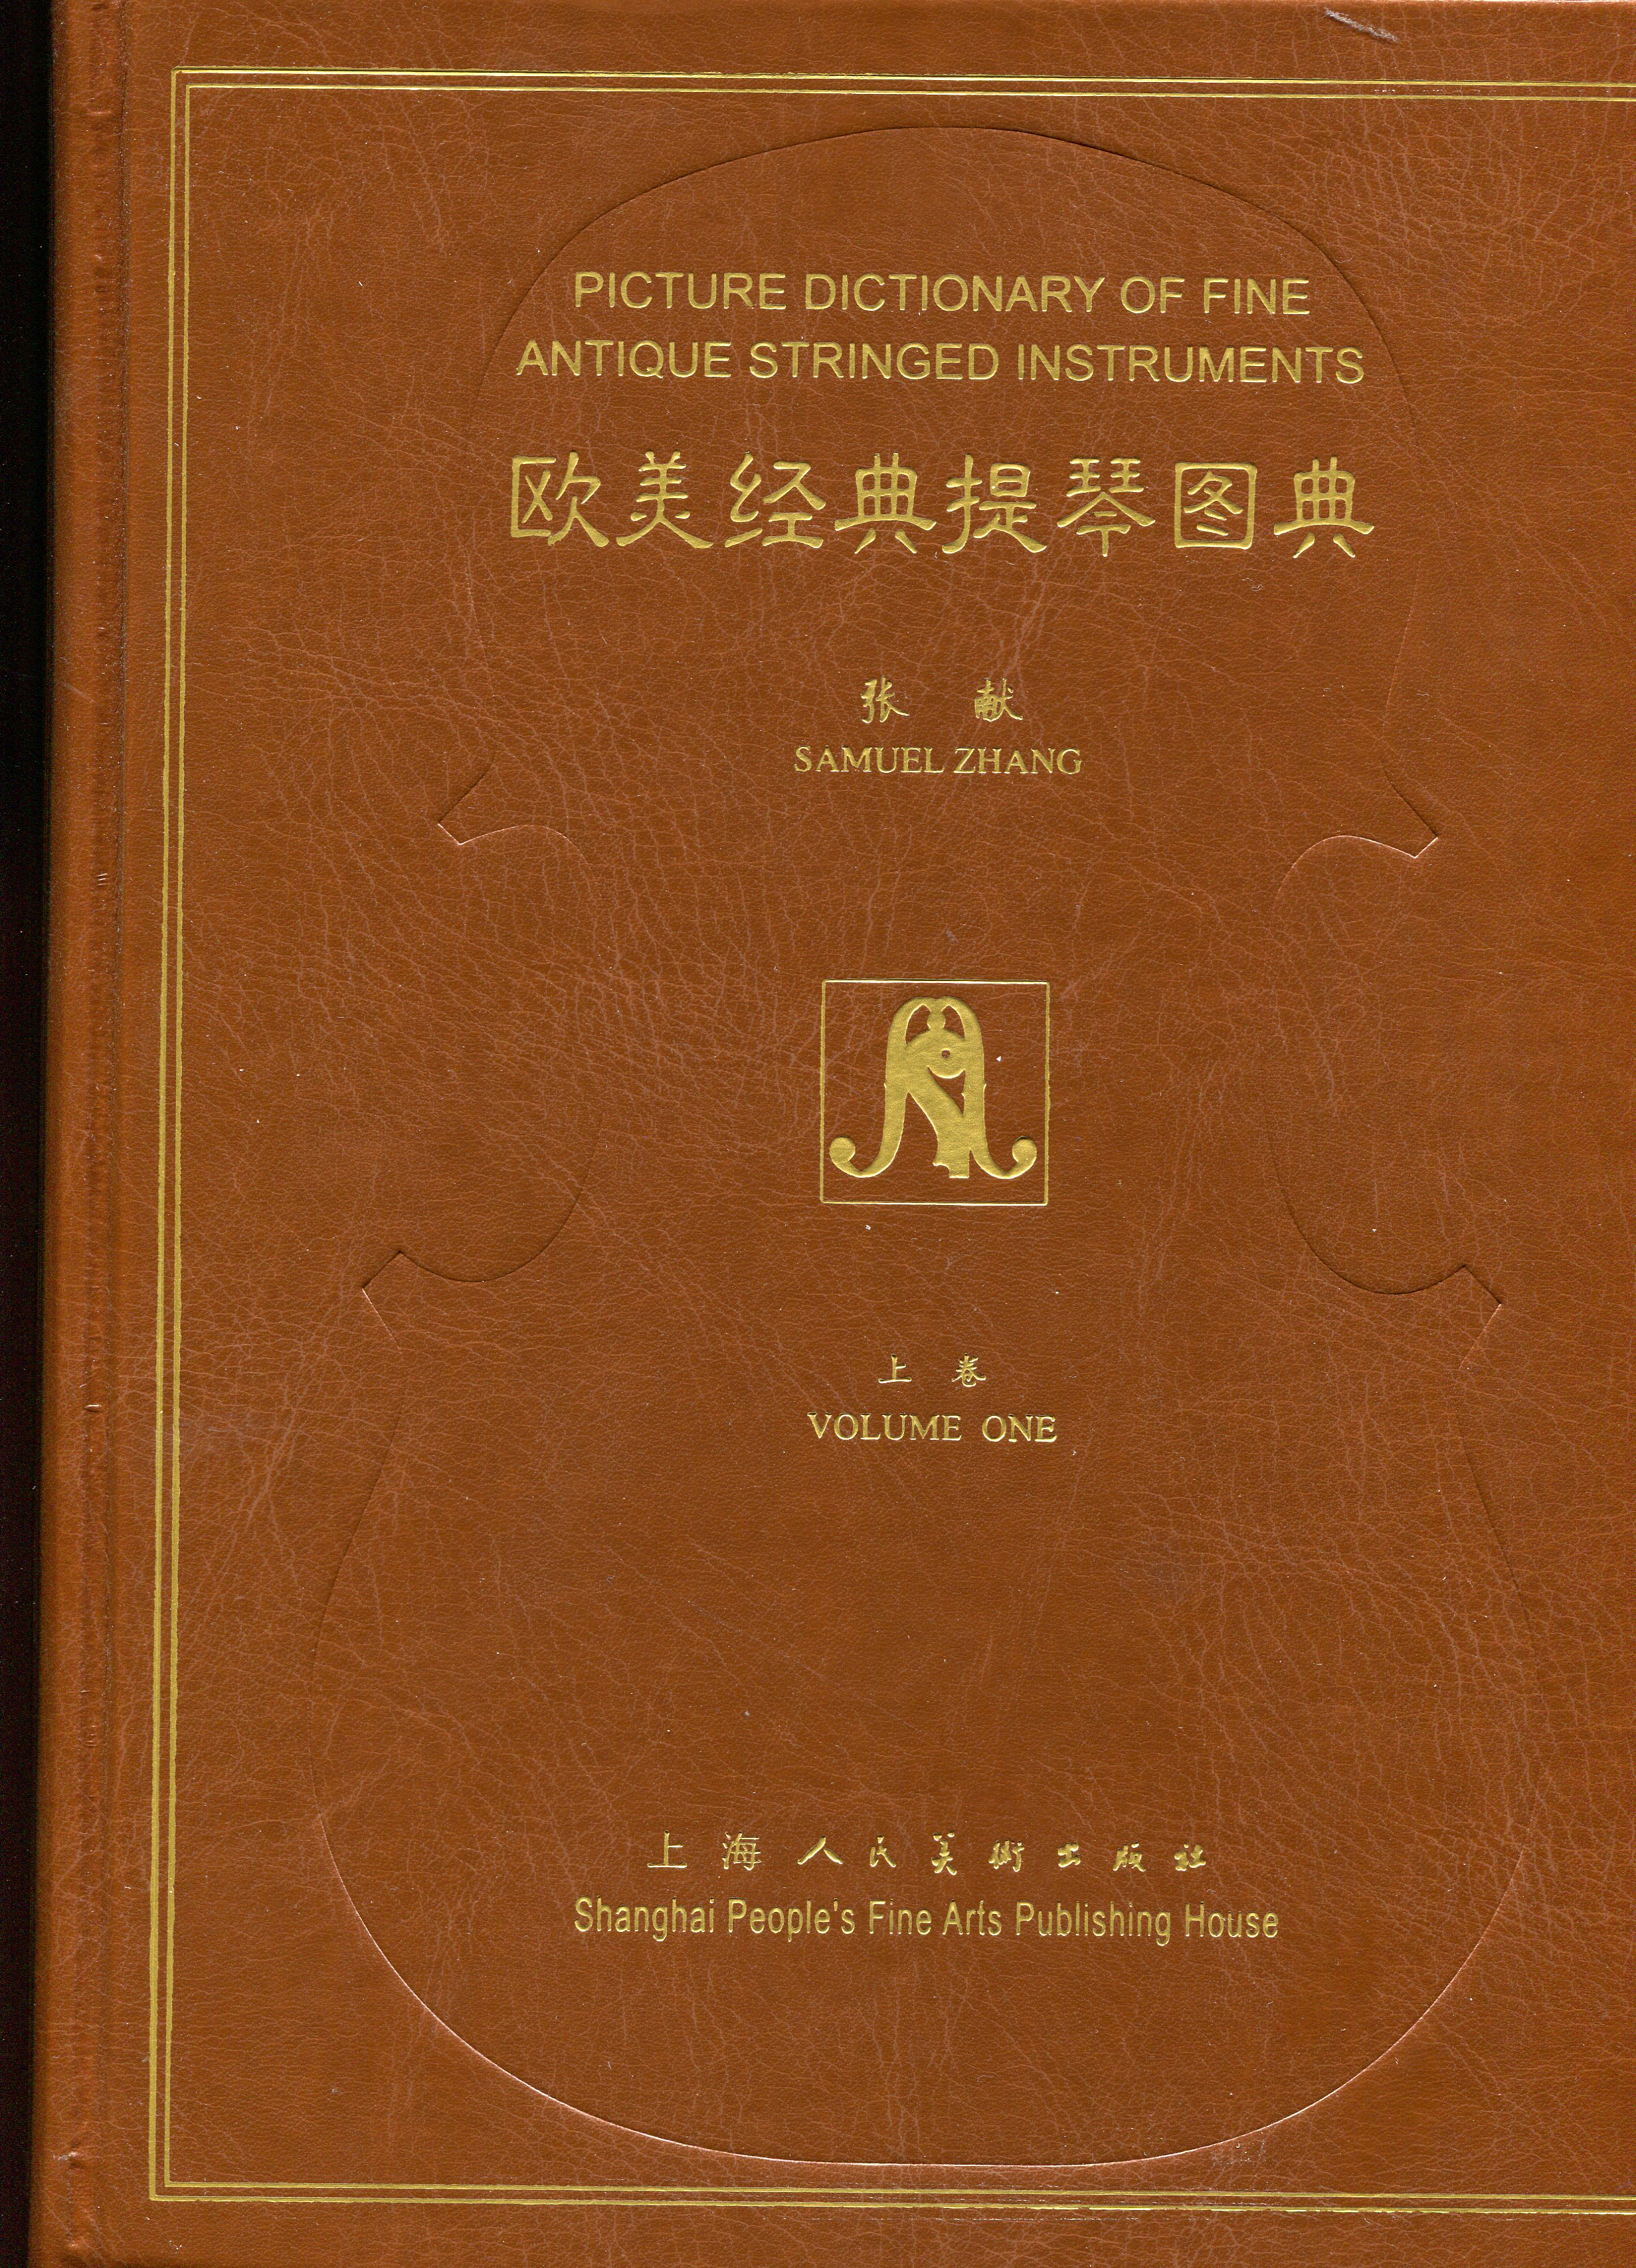 S. Zhang: Picture Dictionary of Fine String Instruments